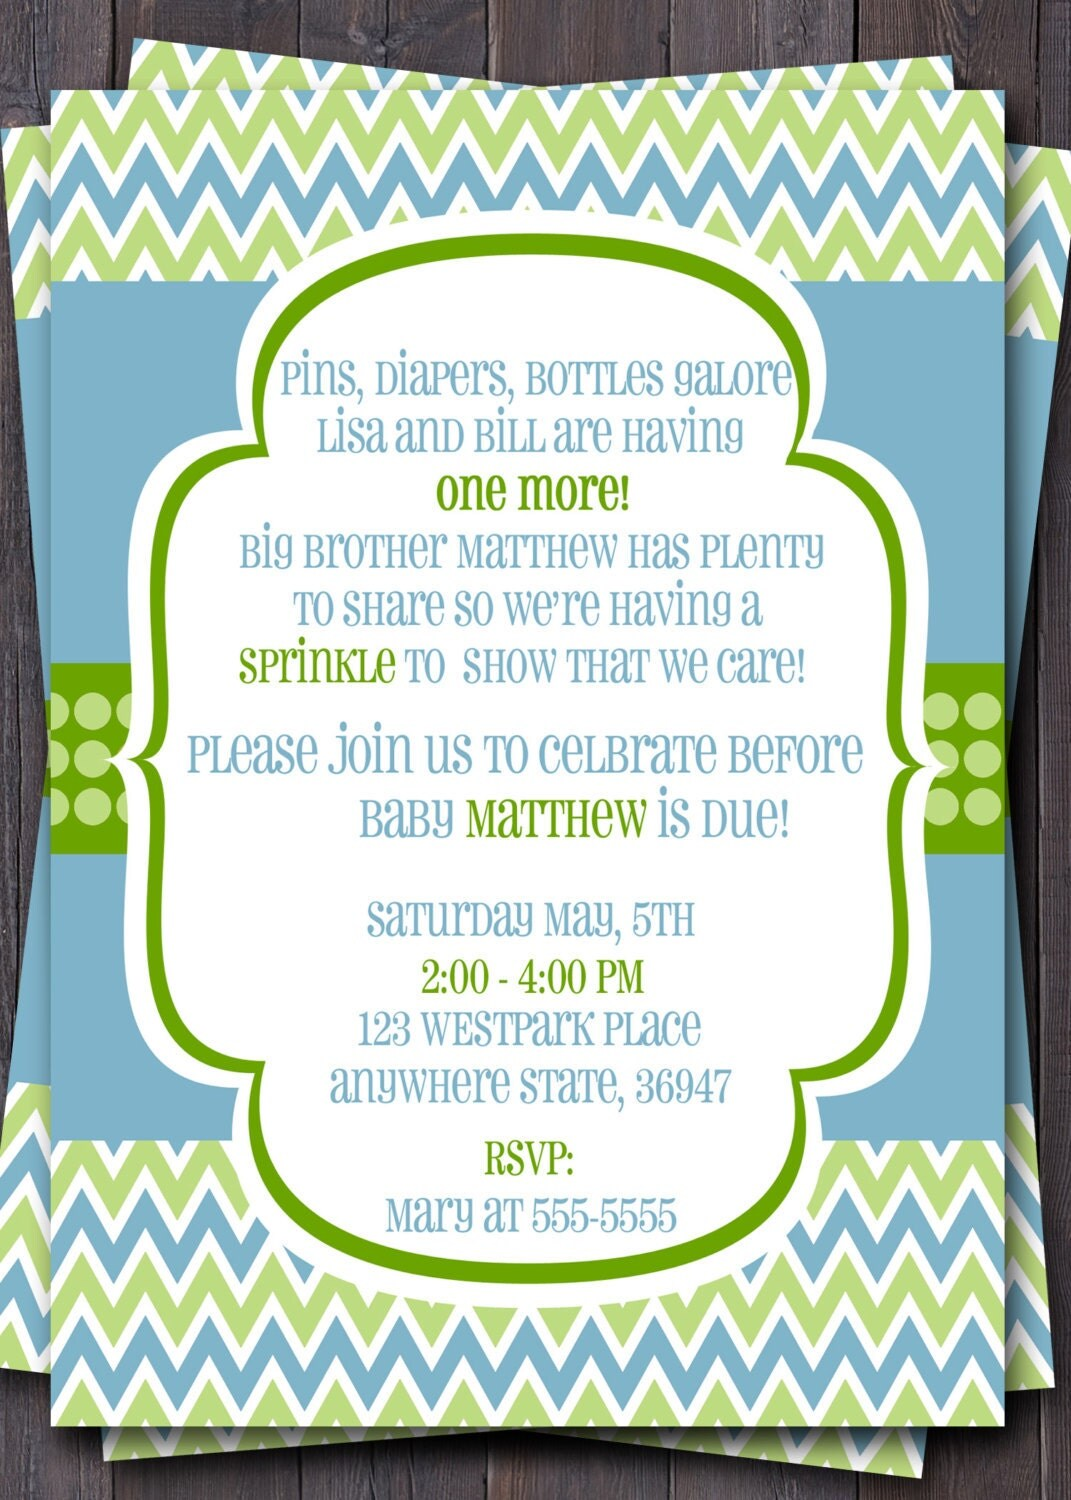 Sip And Shop Invitation with amazing invitations example